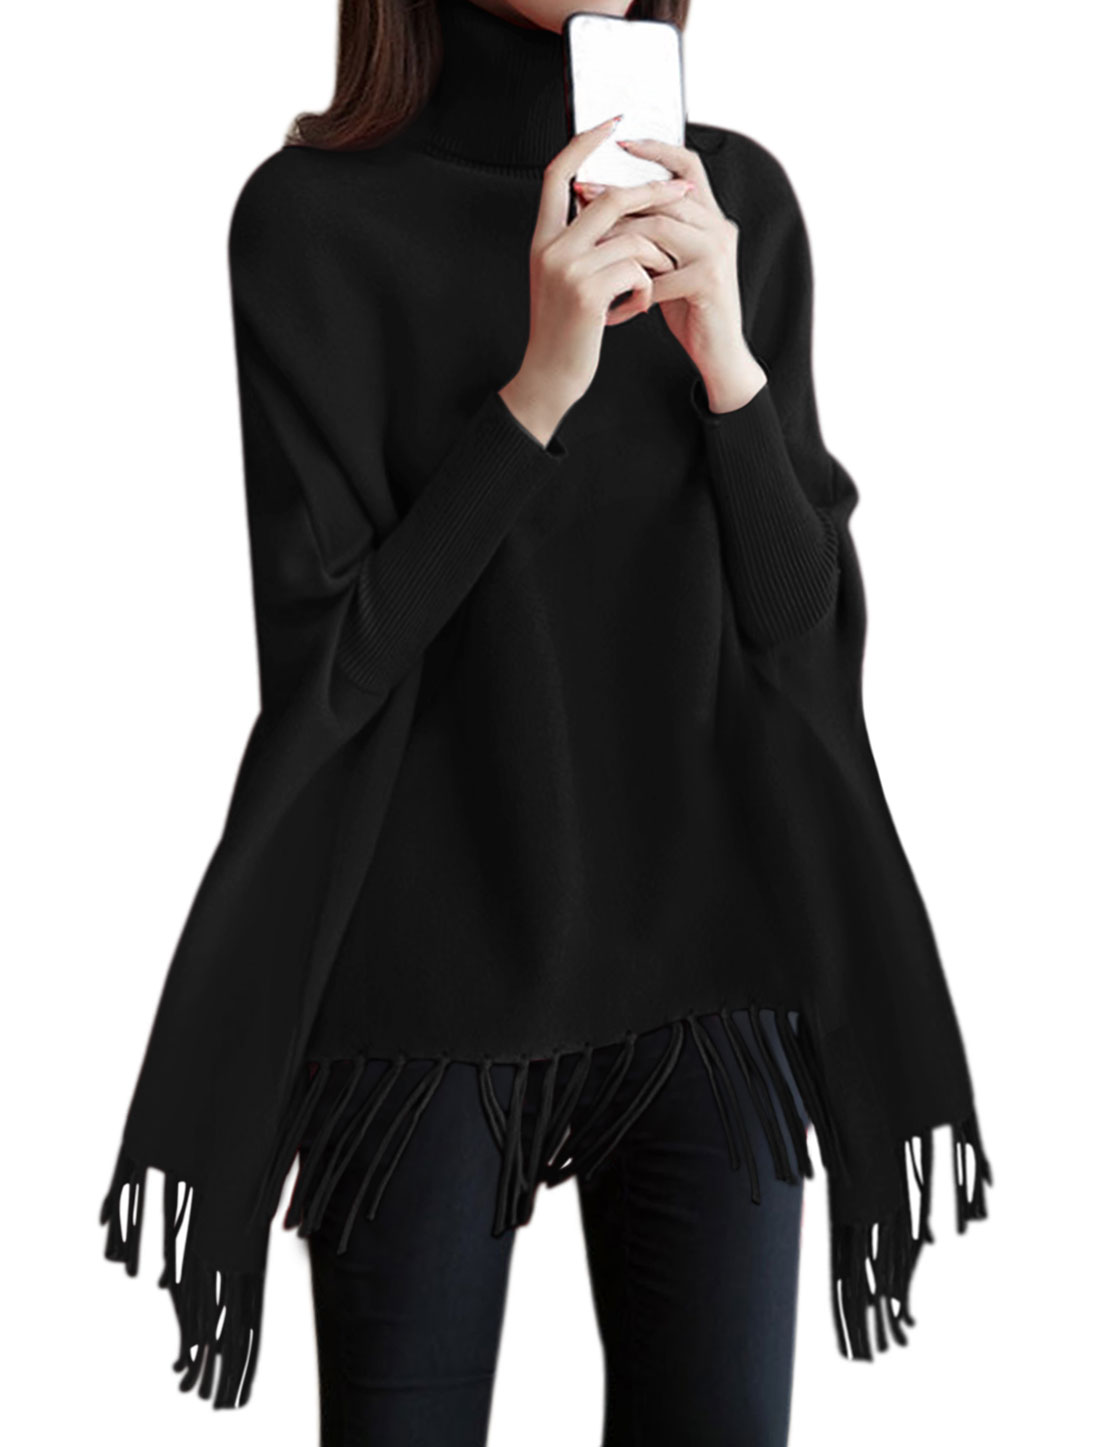 Women Turtle Neck Dolman Sleeves Tassels Hem Loose Tunic Knit Top Black S